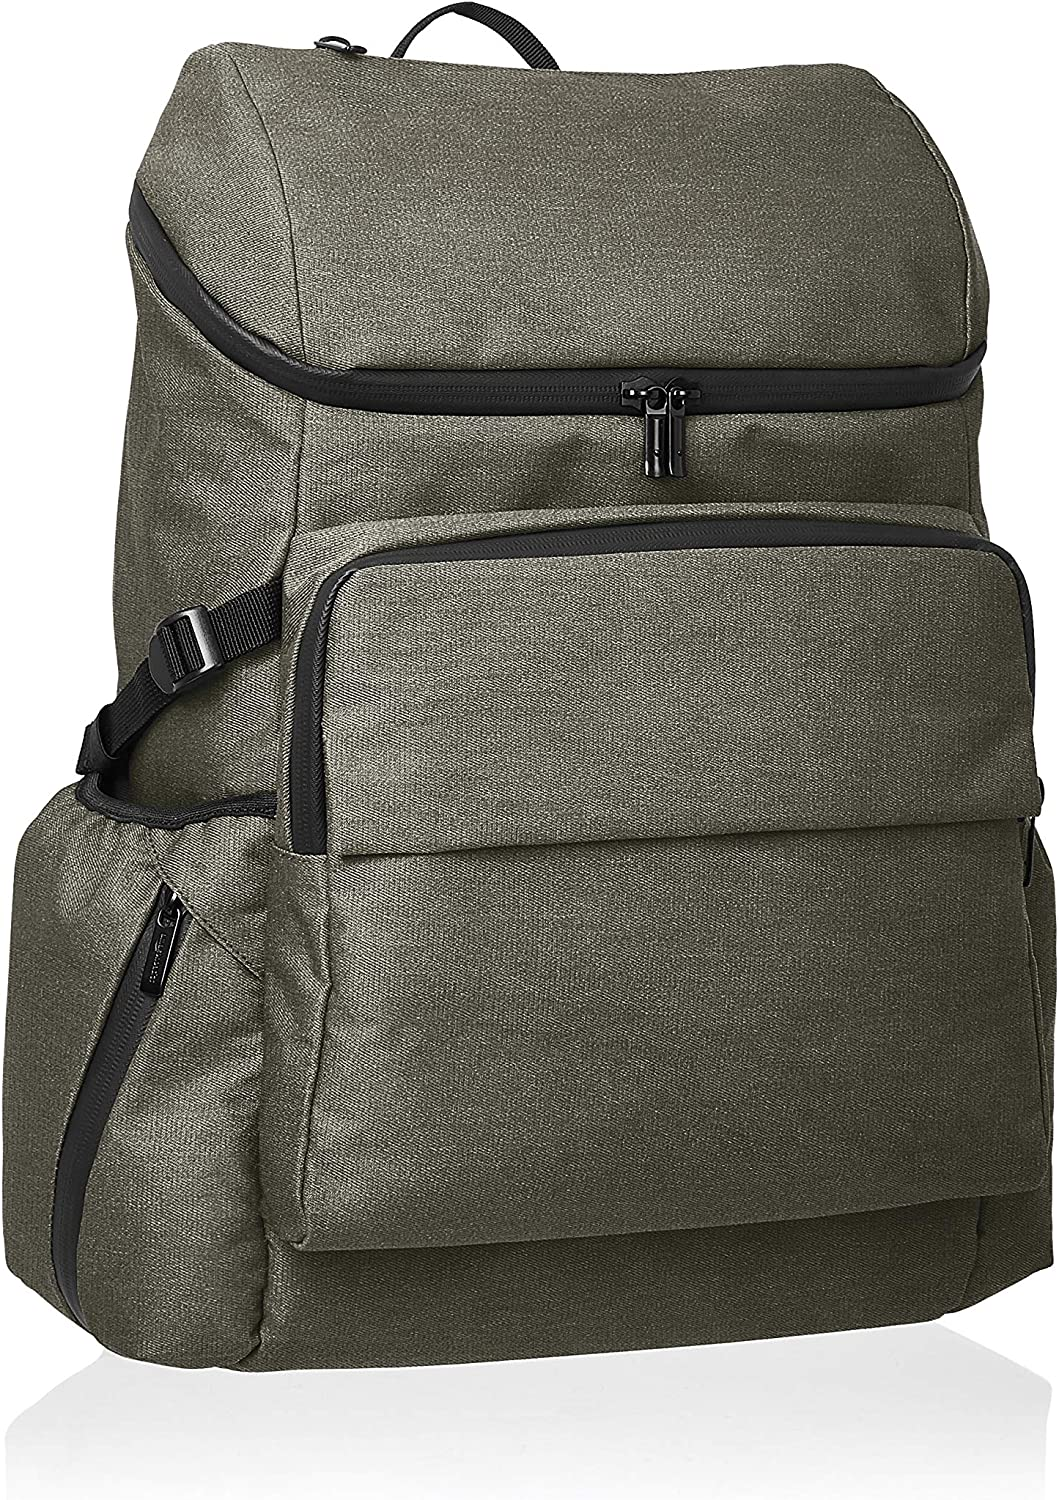 AmazonBasics Urban Backpack for Laptops up to 15-Inches - Green